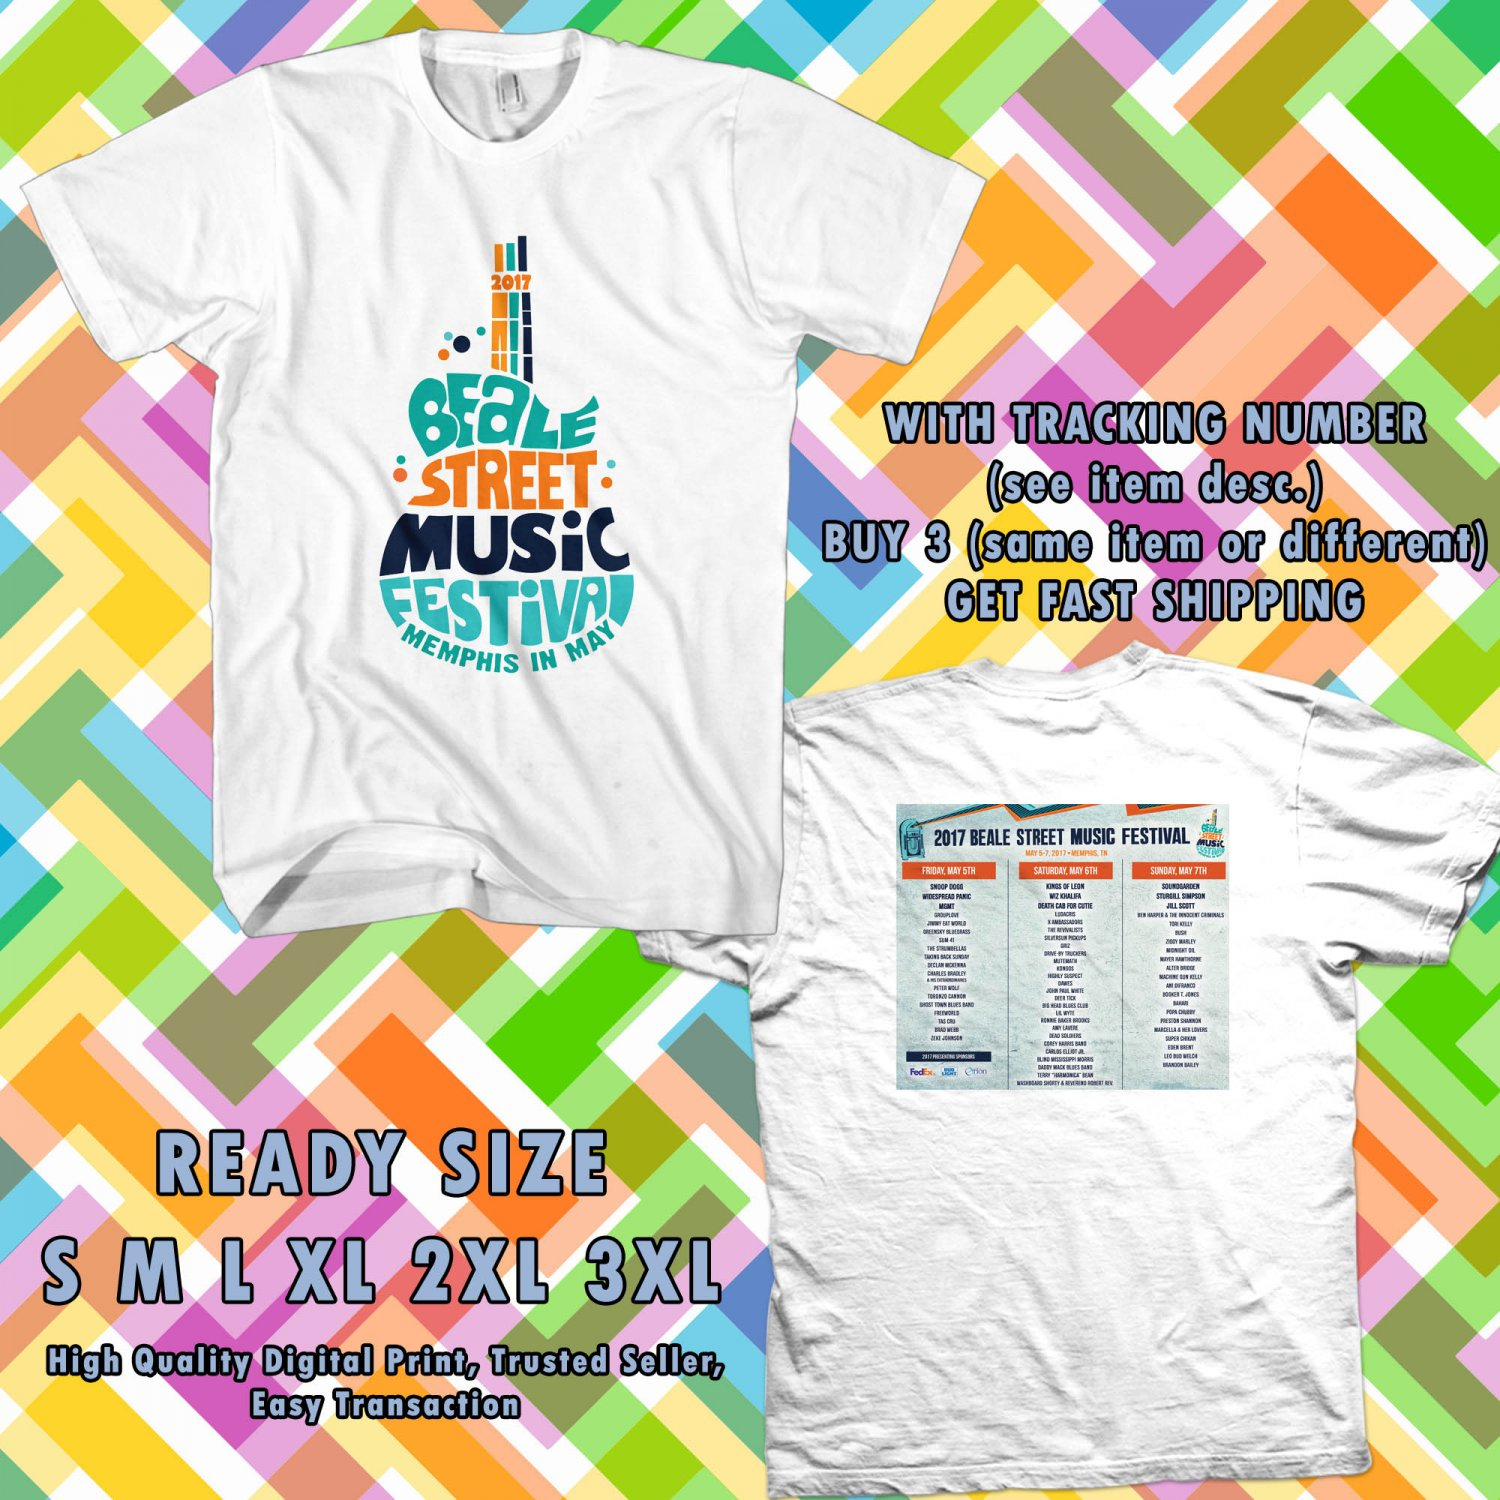 NEW BEALE MUSIC FEST MAY 2017 WHITE TEE 2 SIDE DMTR 776